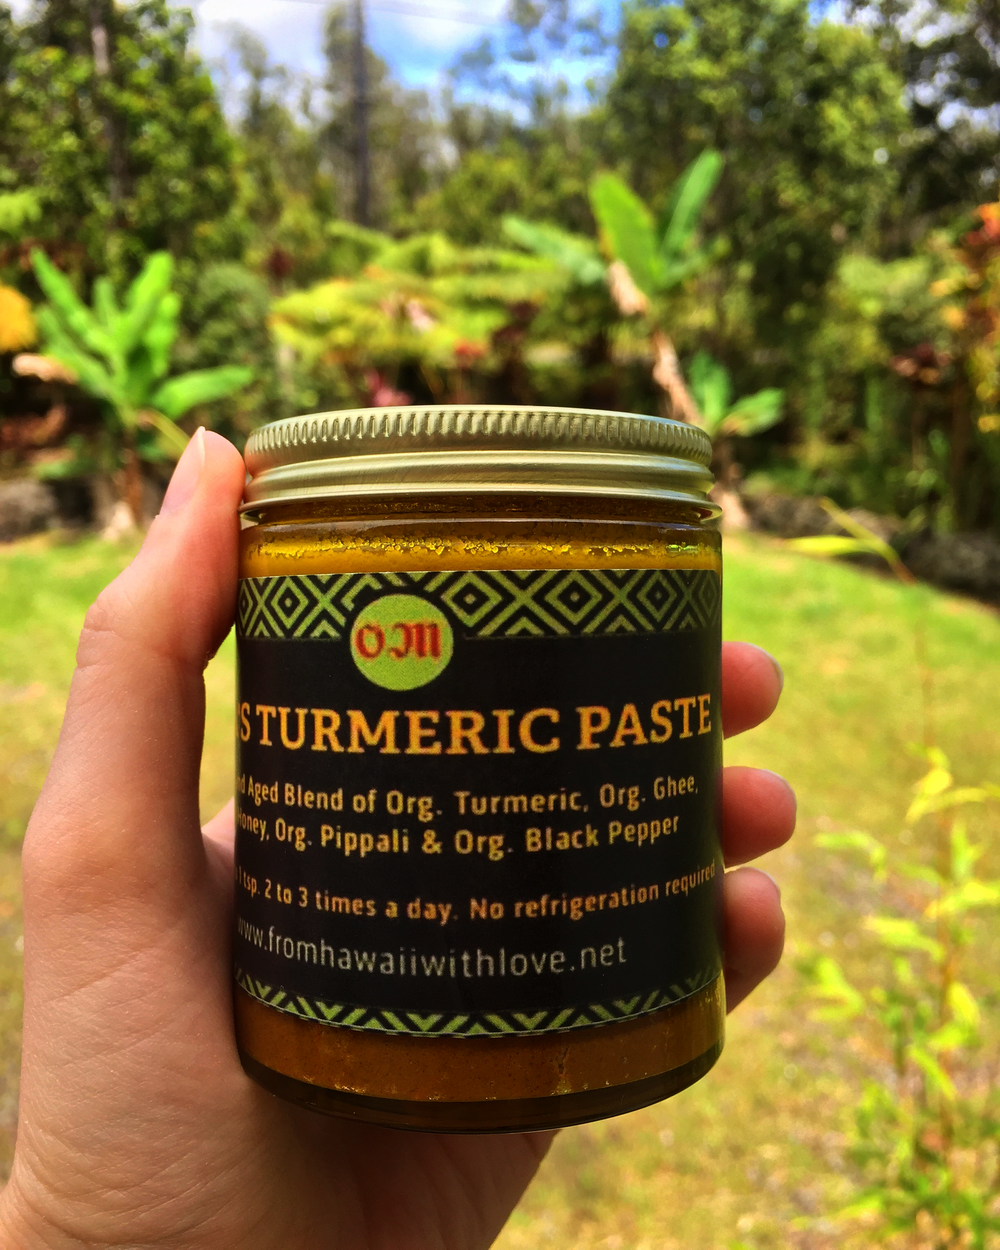 Sita's Turmeric Paste from Hilo Farmers Market